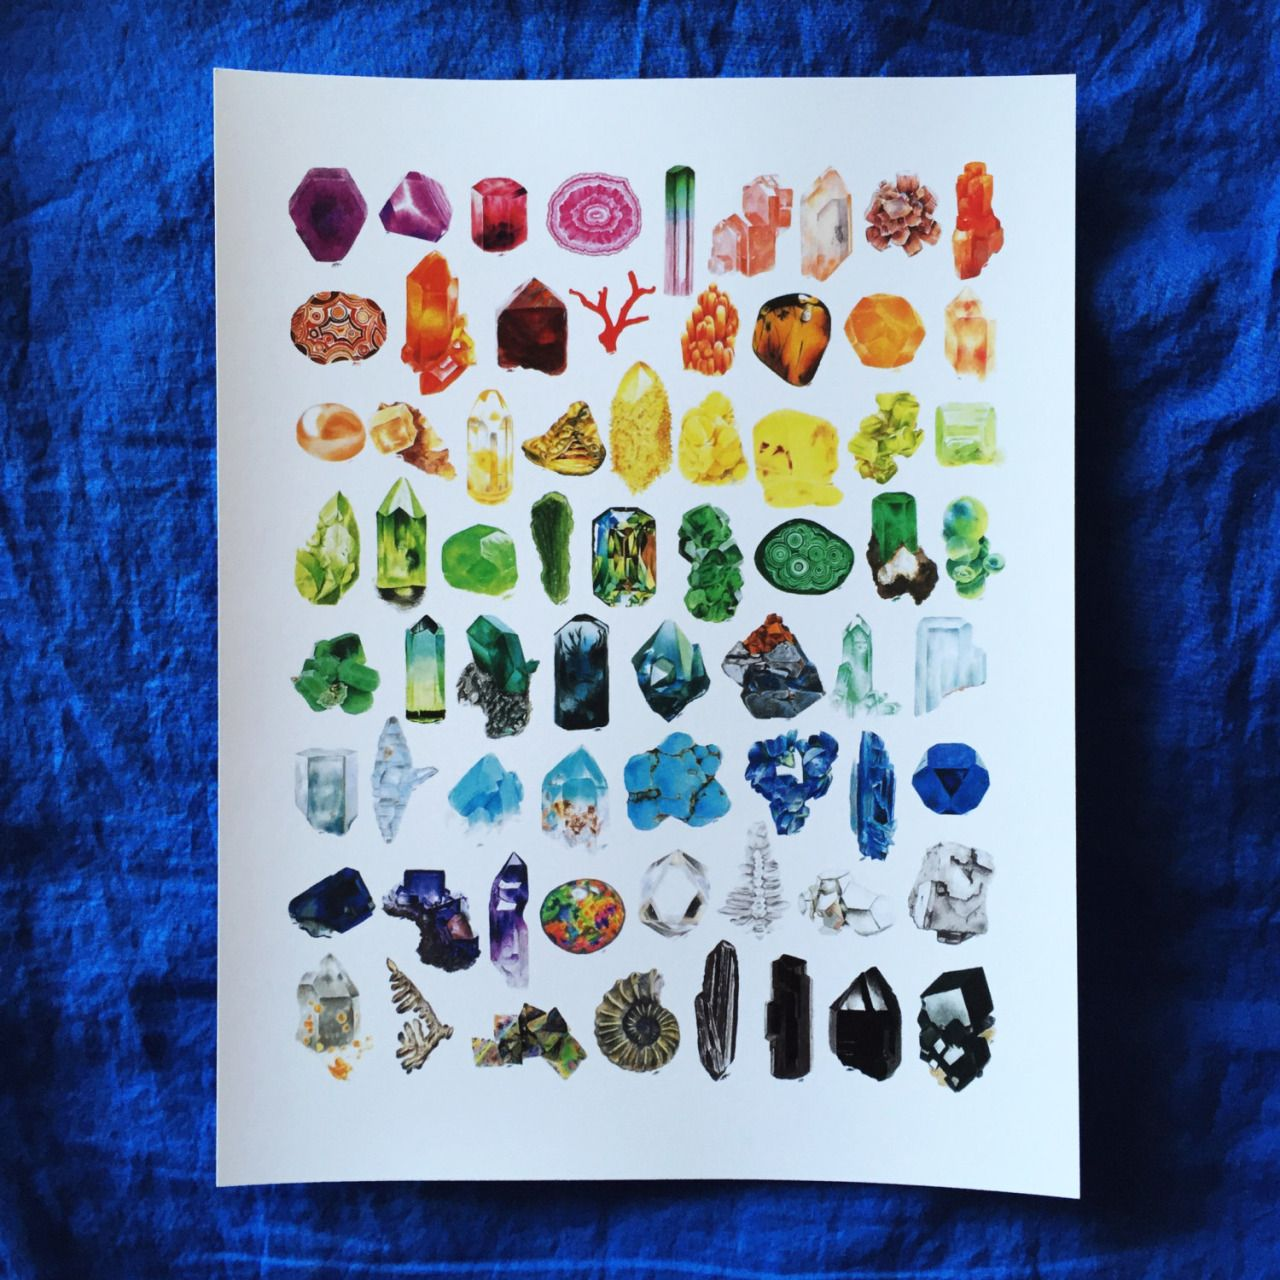 http://sosuperawesome.com/post/141237573053/crystal-art-prints-and-stickers-by-twigglings-on